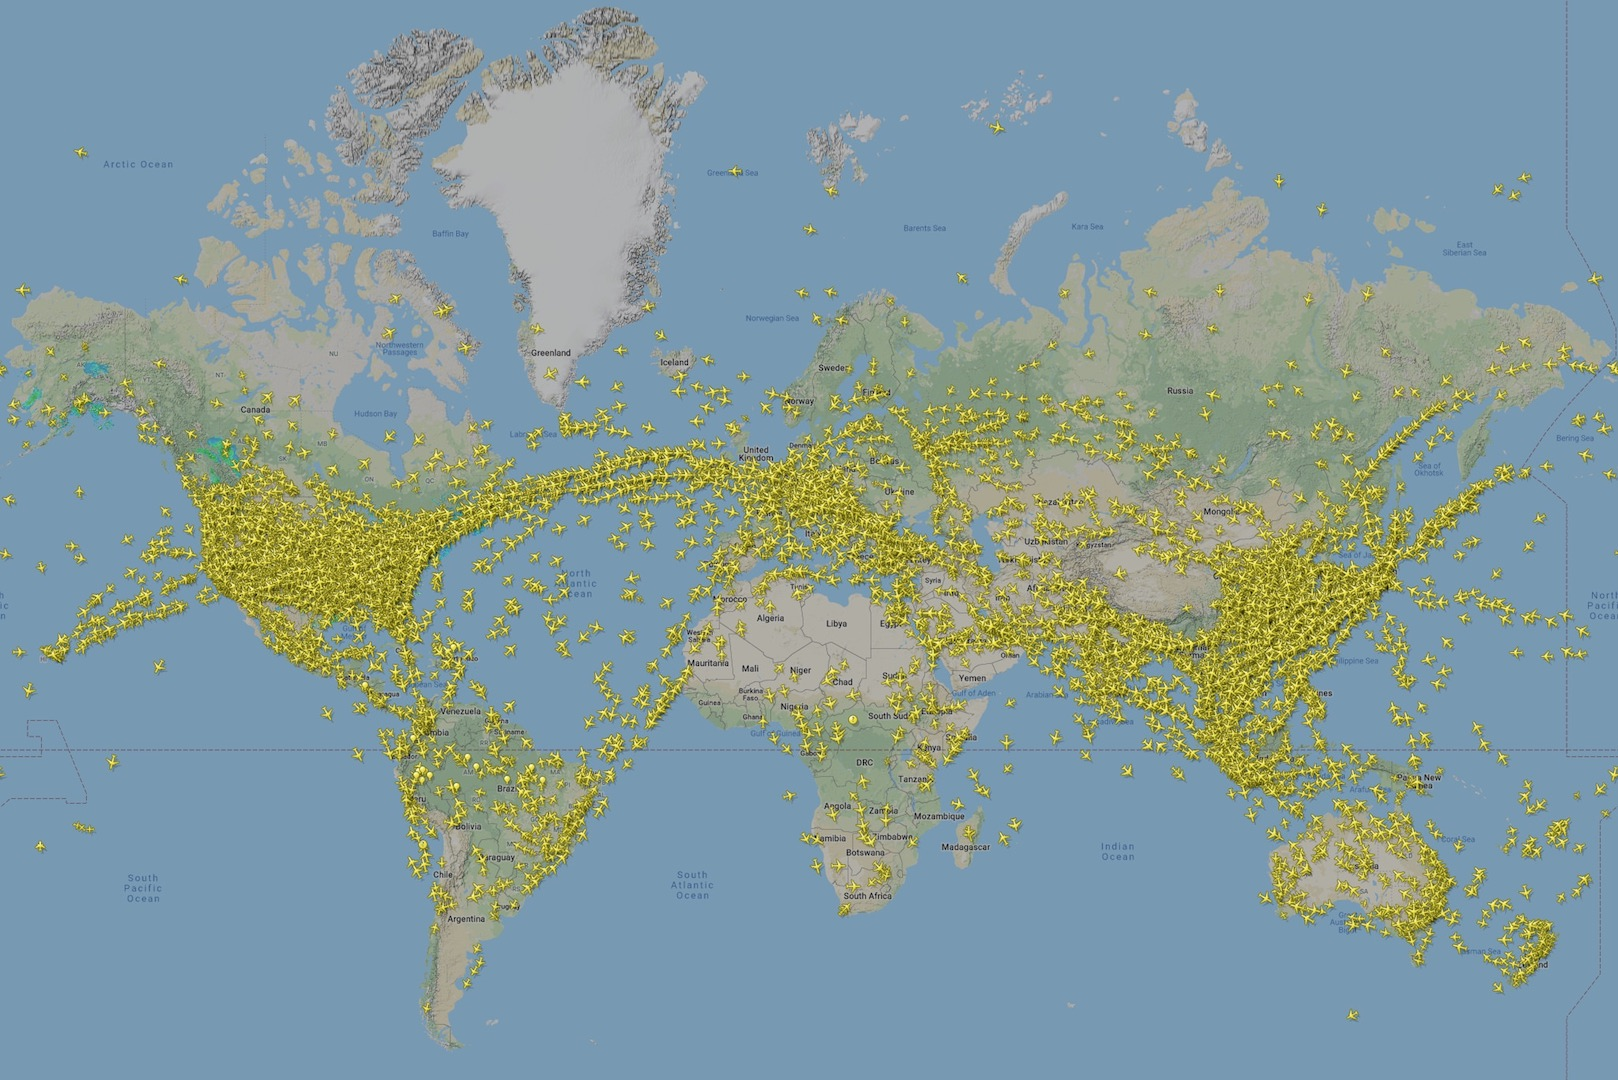 November 2019 Flightradar24 coverage